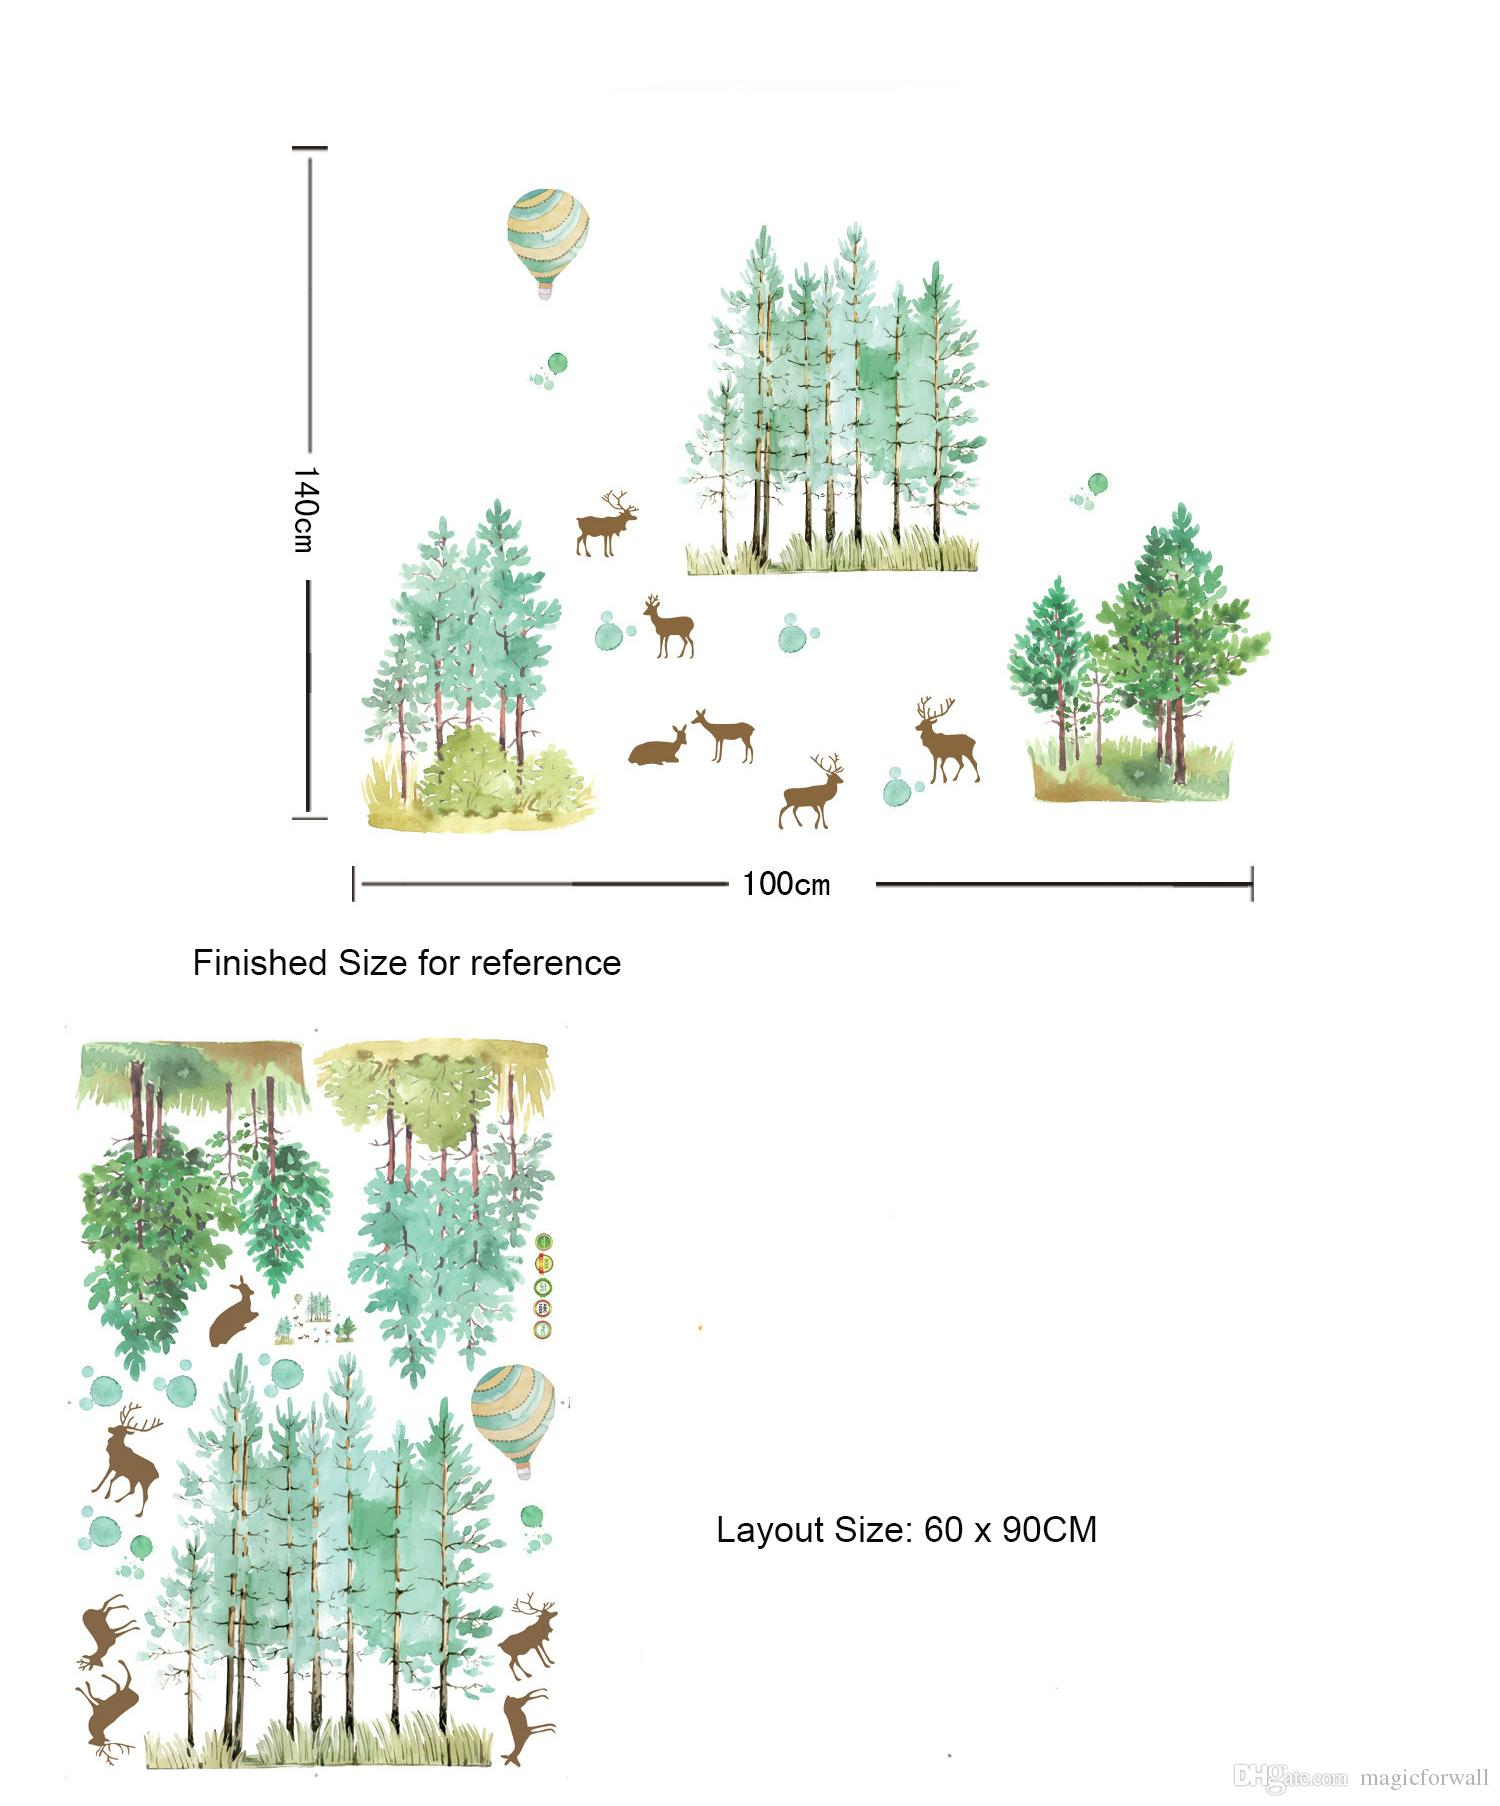 Sika Deer in the Woods Wall Stickers Home Decor Wall Border Decal Forest Deer Hot-air Balloon Wallpaper Poster Art Decorative Wall Applique